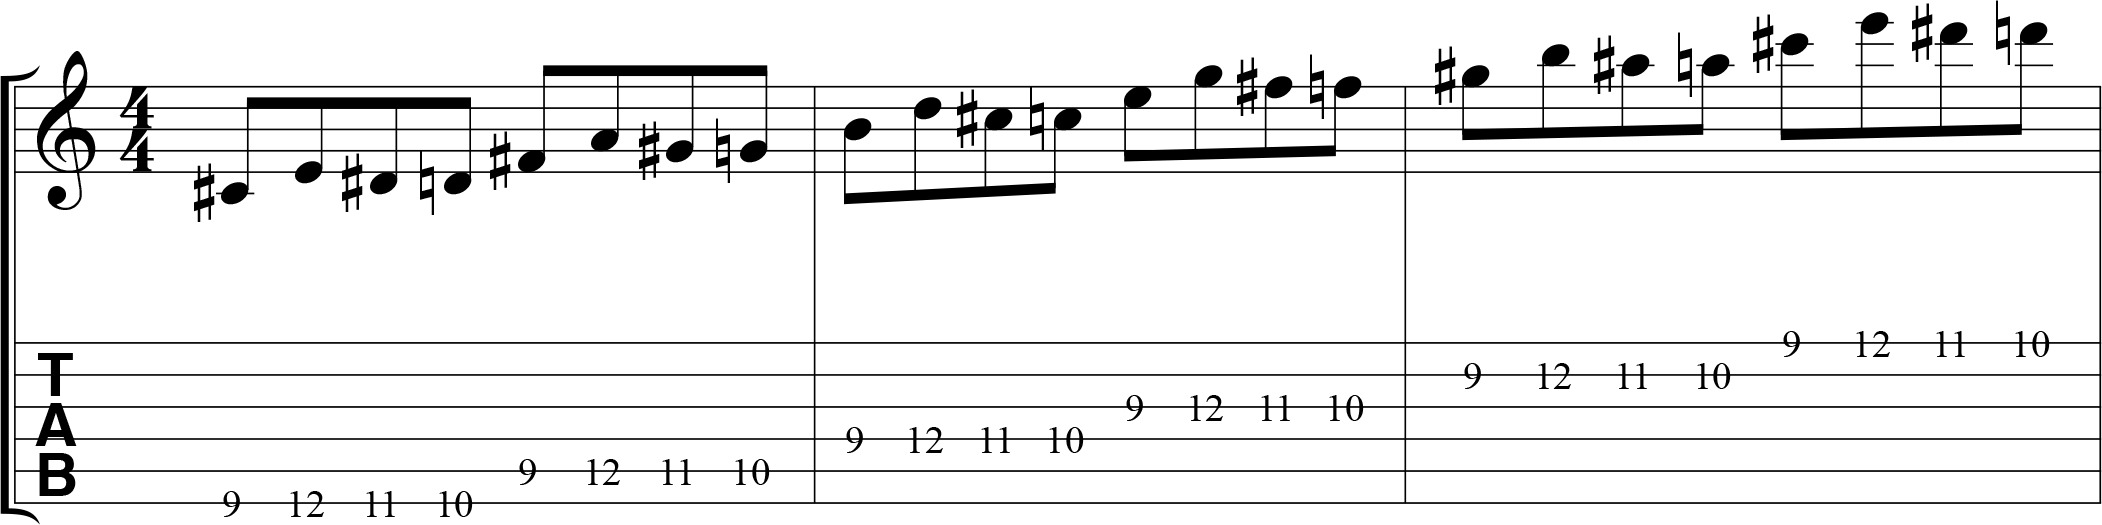 Chromatic alternate picking exercise for guitar, 1432, ascending.